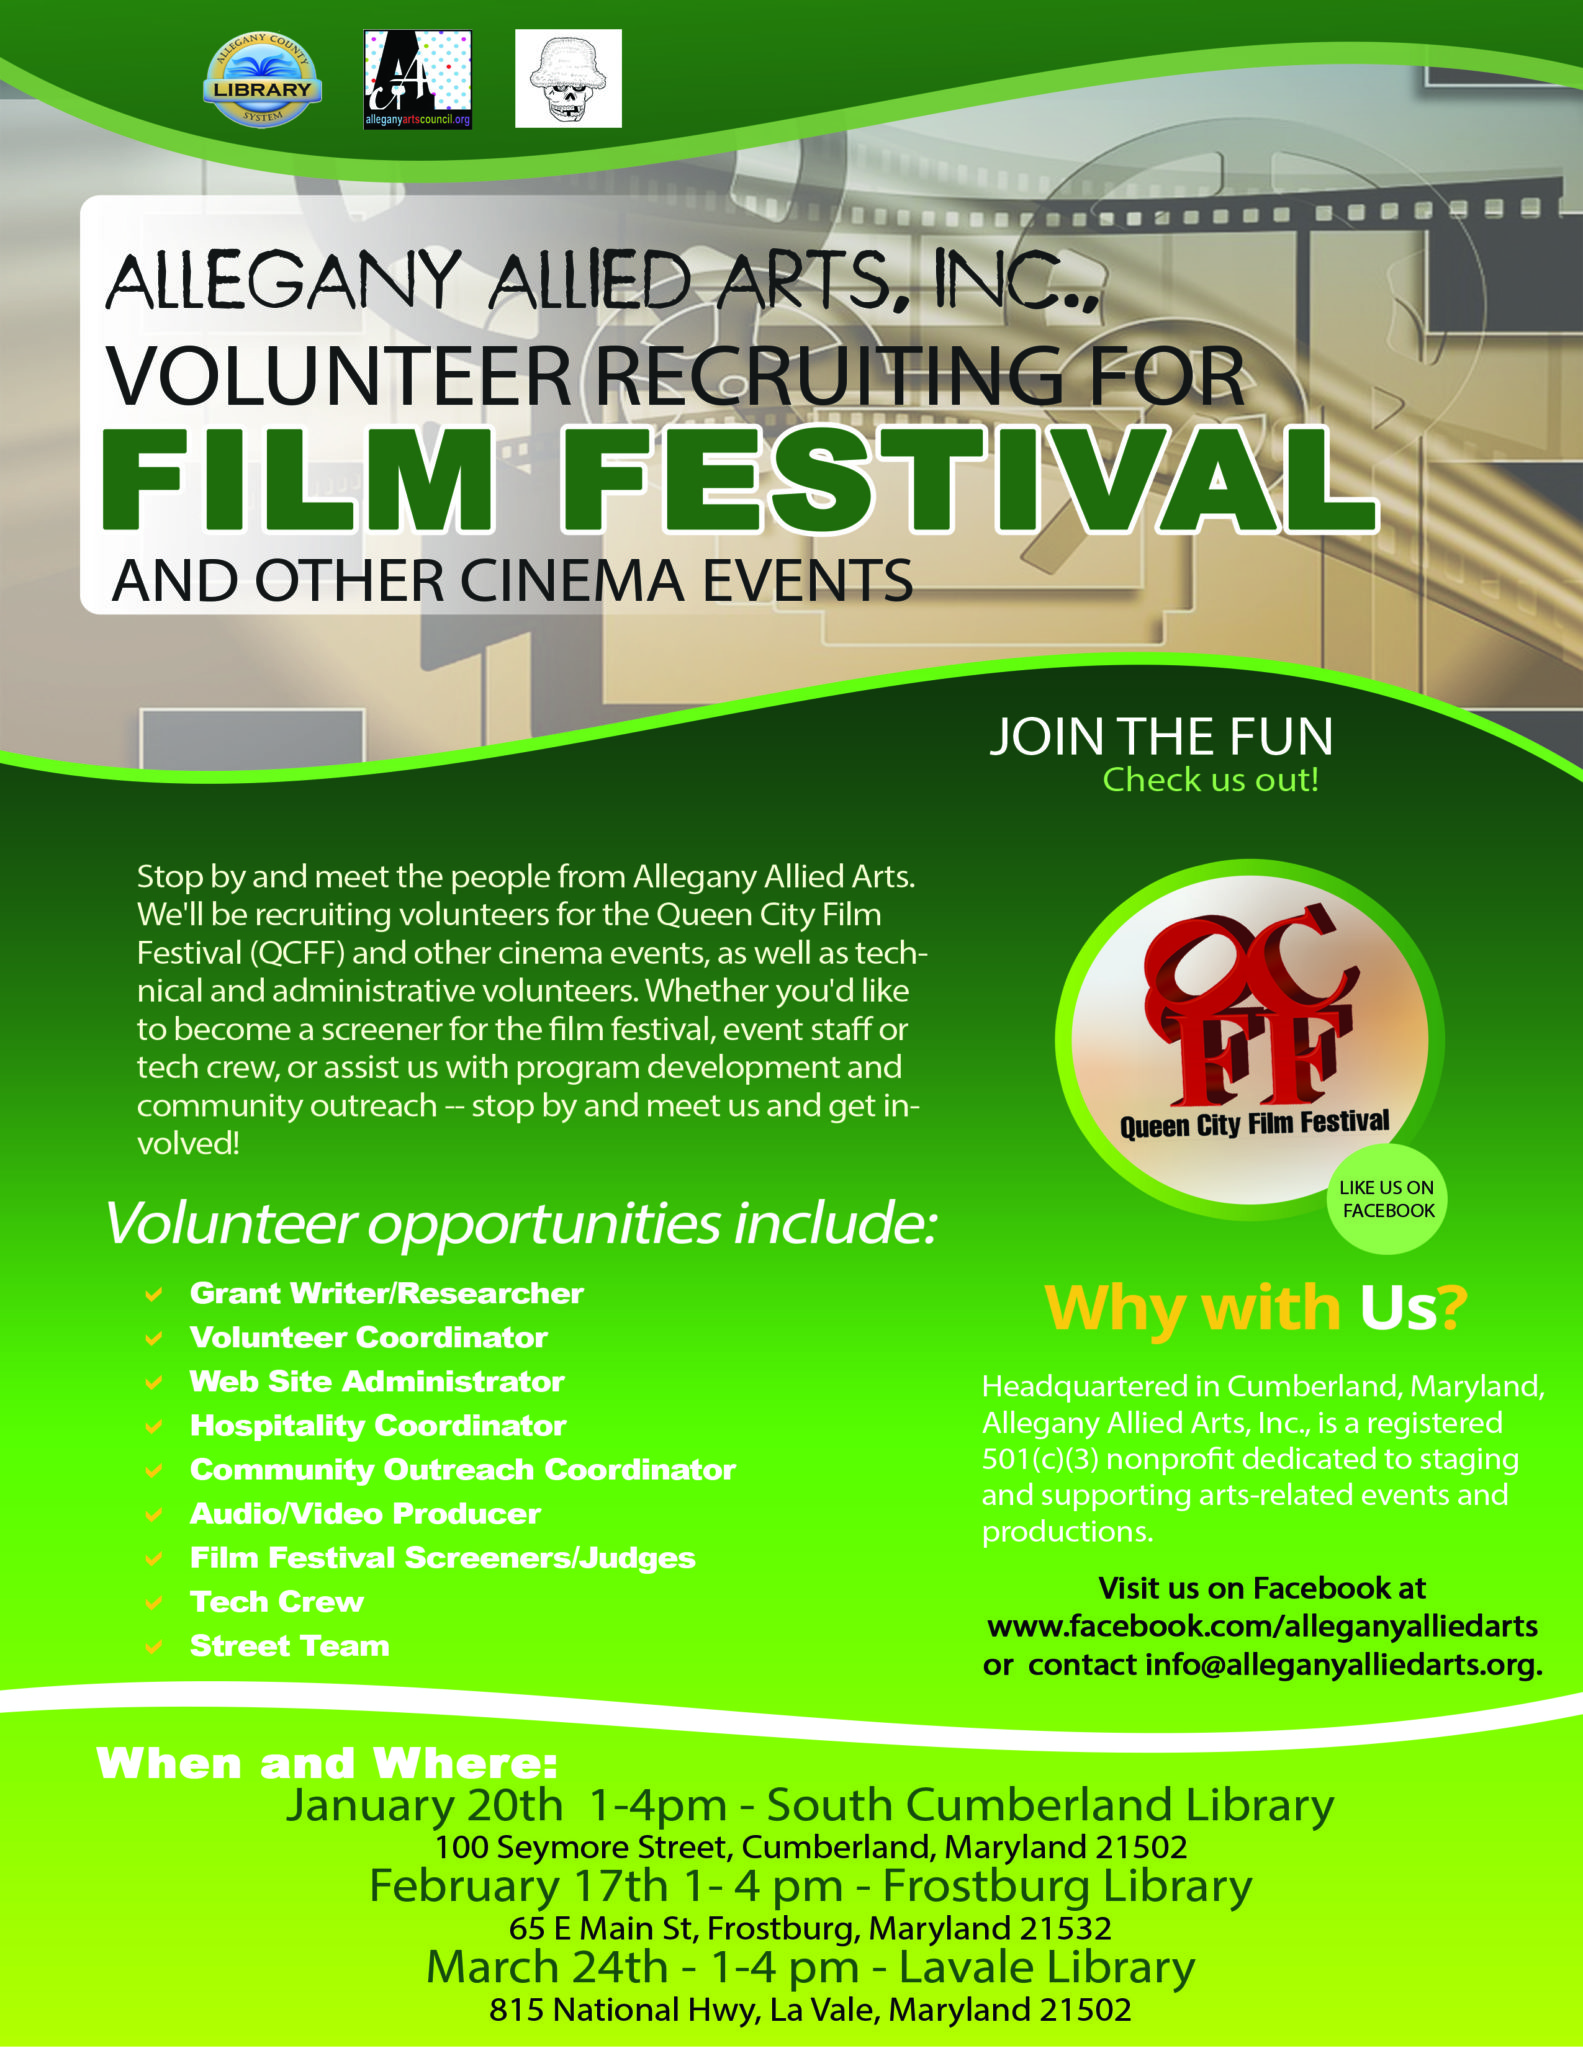 Allegany Allied Arts Inc